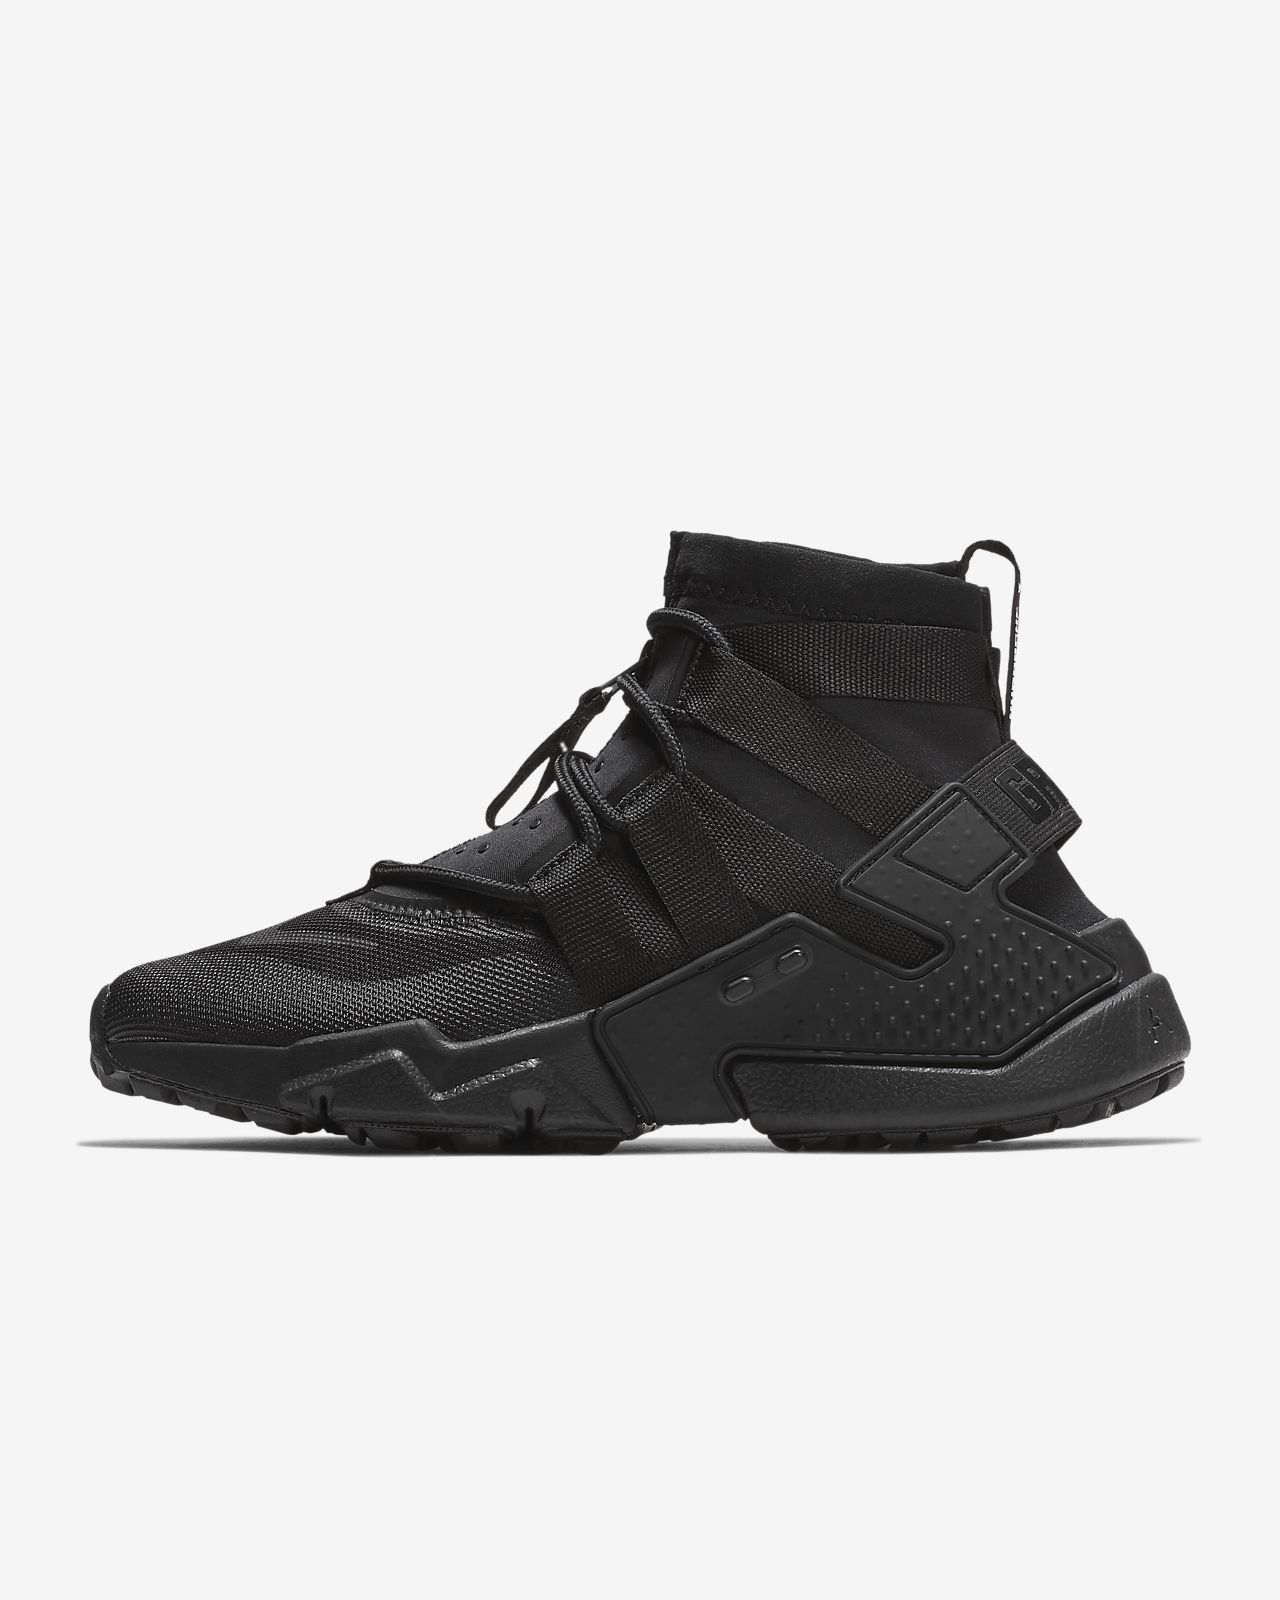 save off efda7 d28ac ... Nike Air Huarache Gripp Men s Shoe